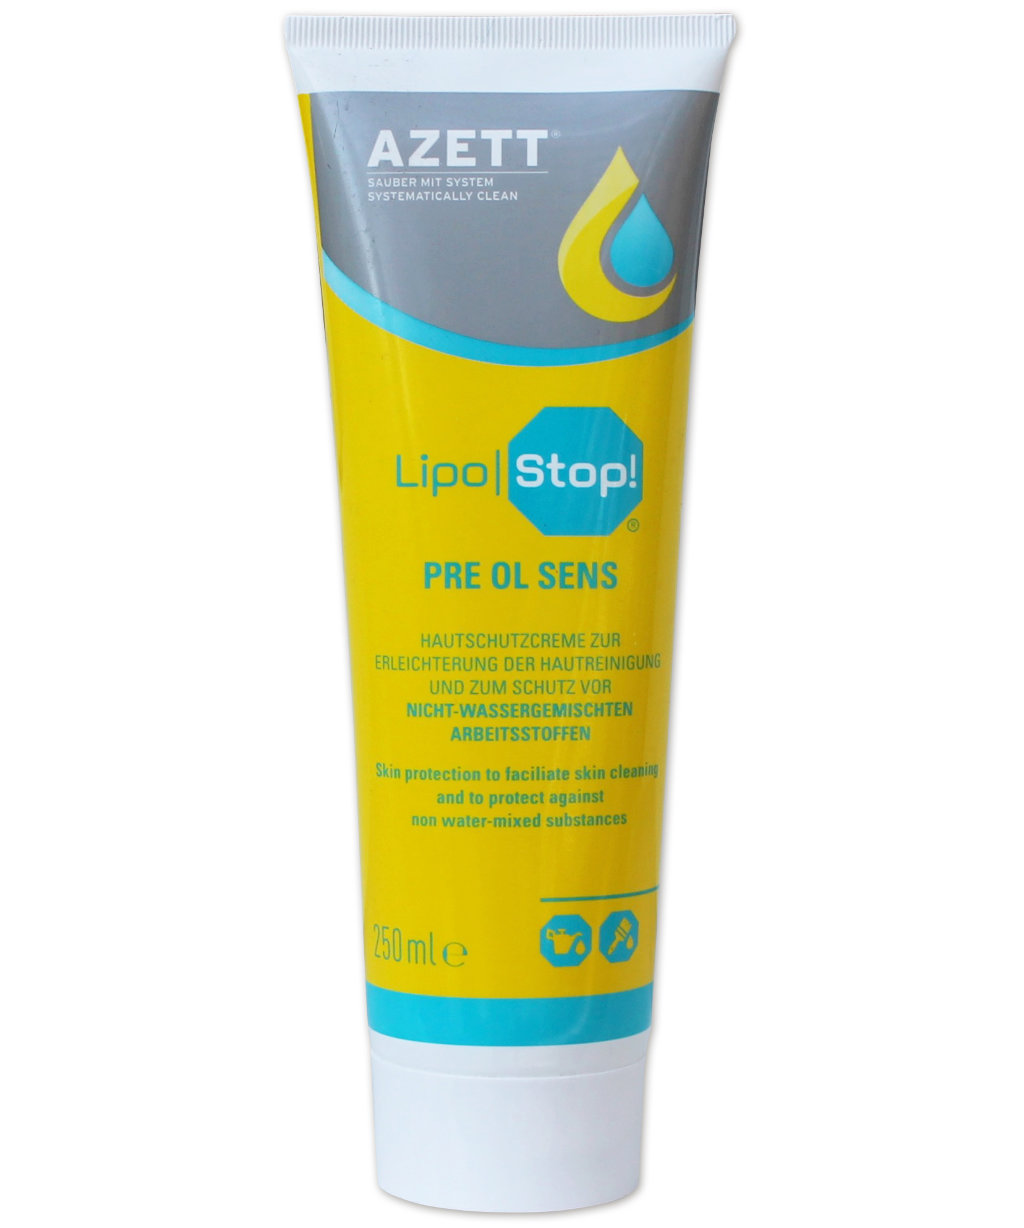 Azett LIPO STOP, Tube à 250 ml